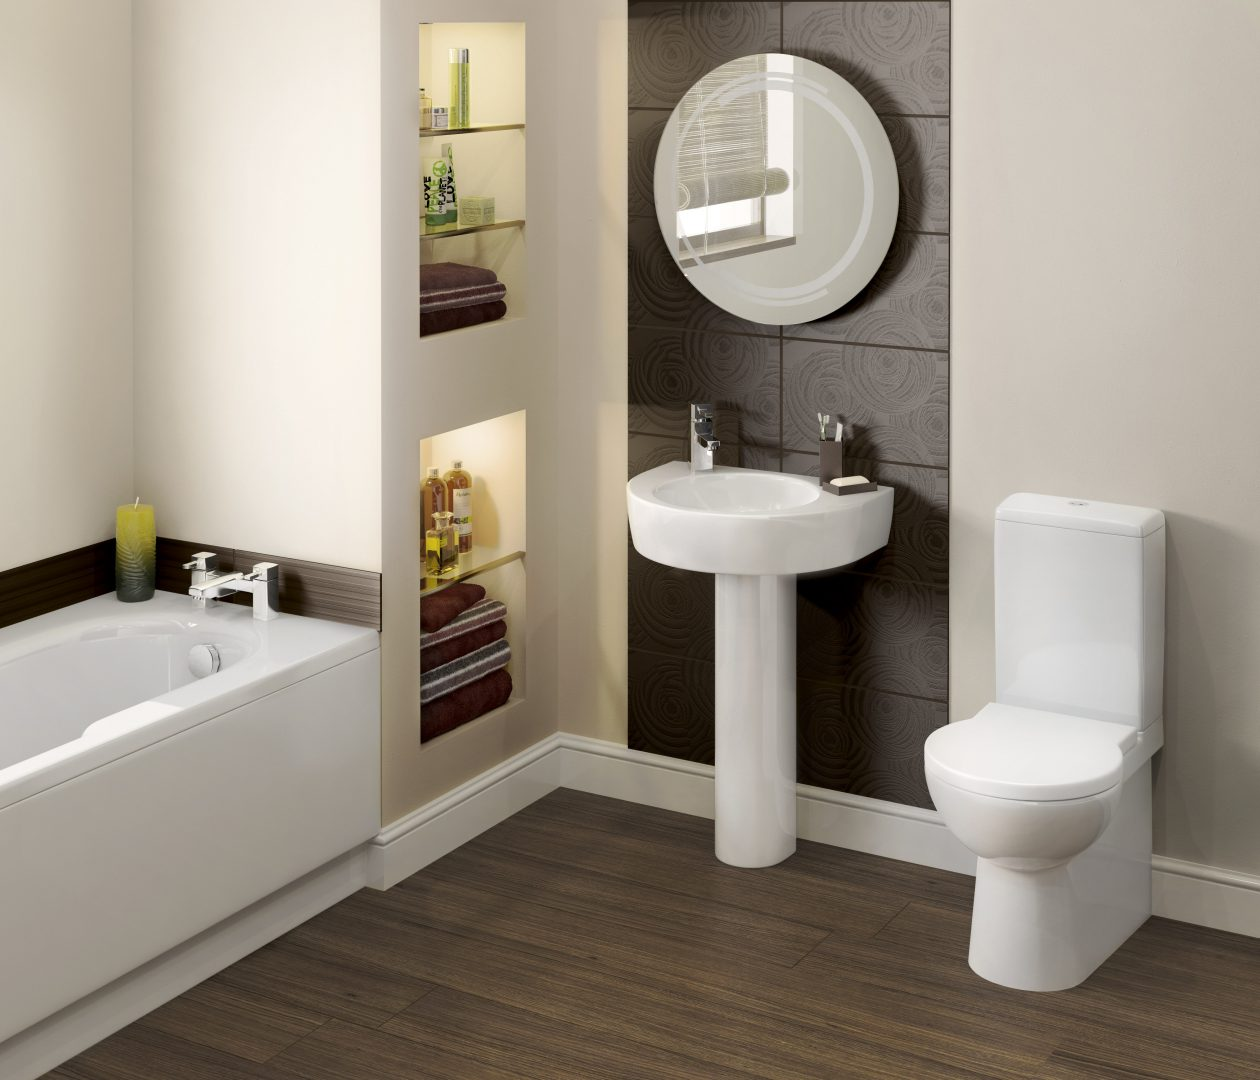 Baño Bajo Escalera Feng Shui:Small Bathroom Design Ideas